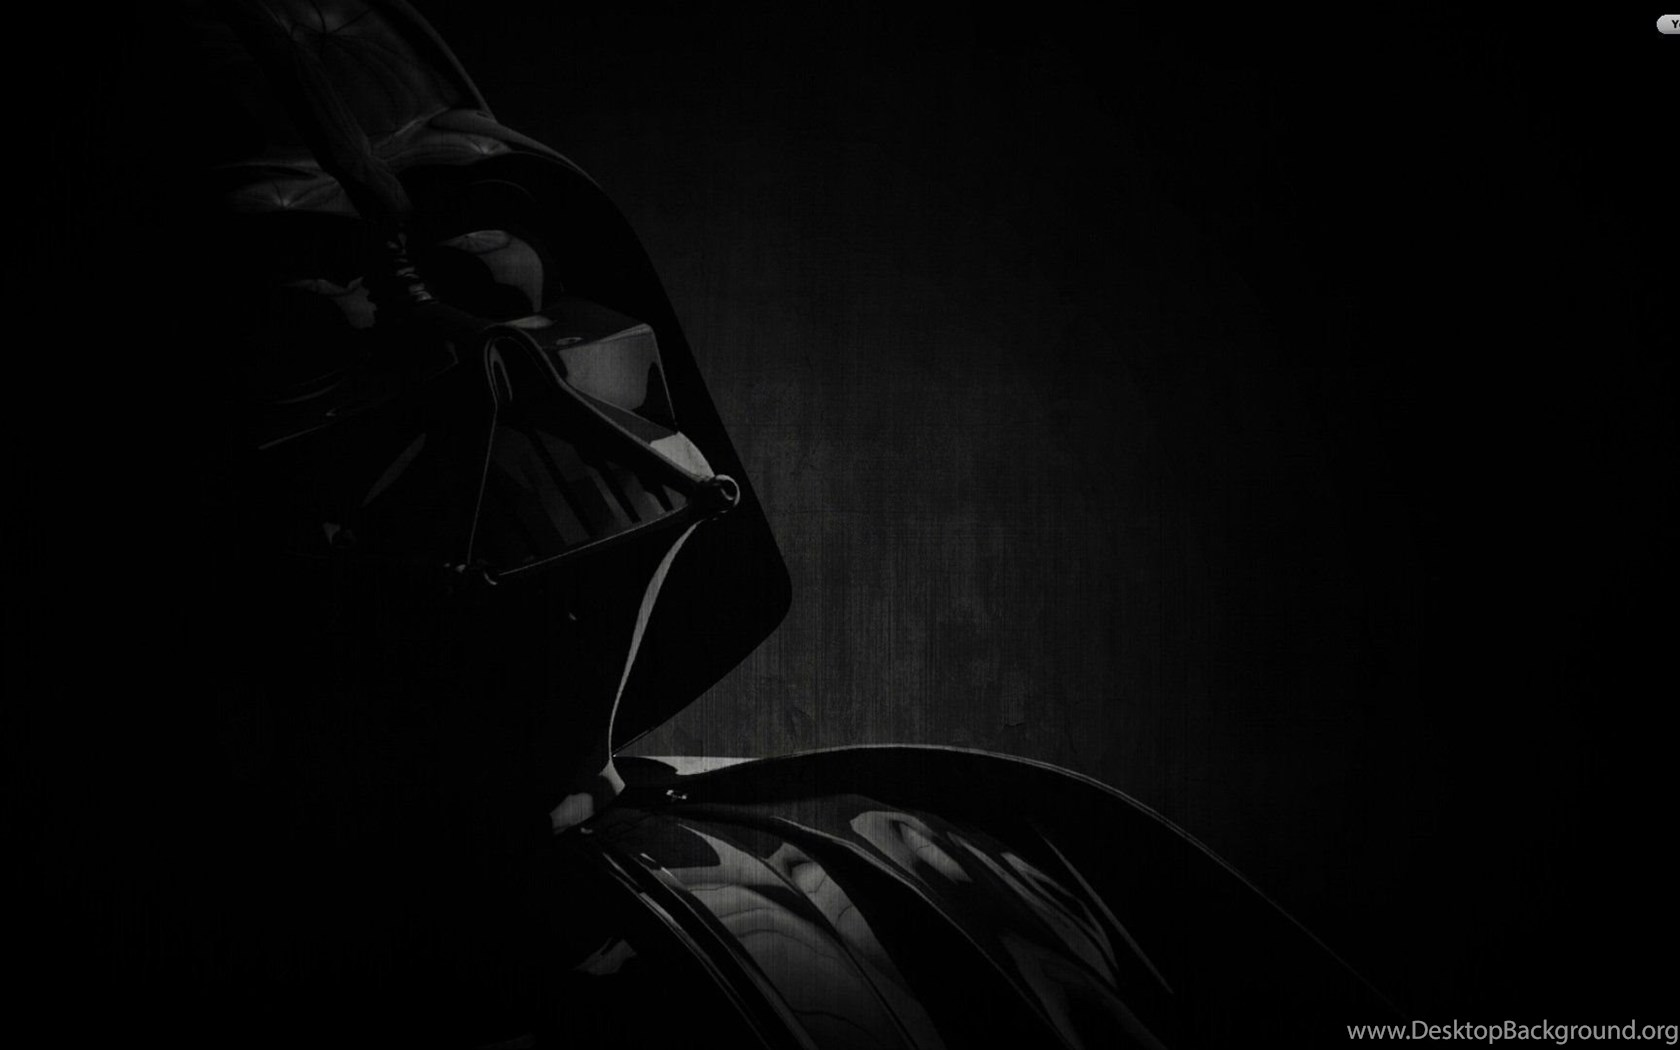 Darth Vader Wallpapers For Android Desktop Background